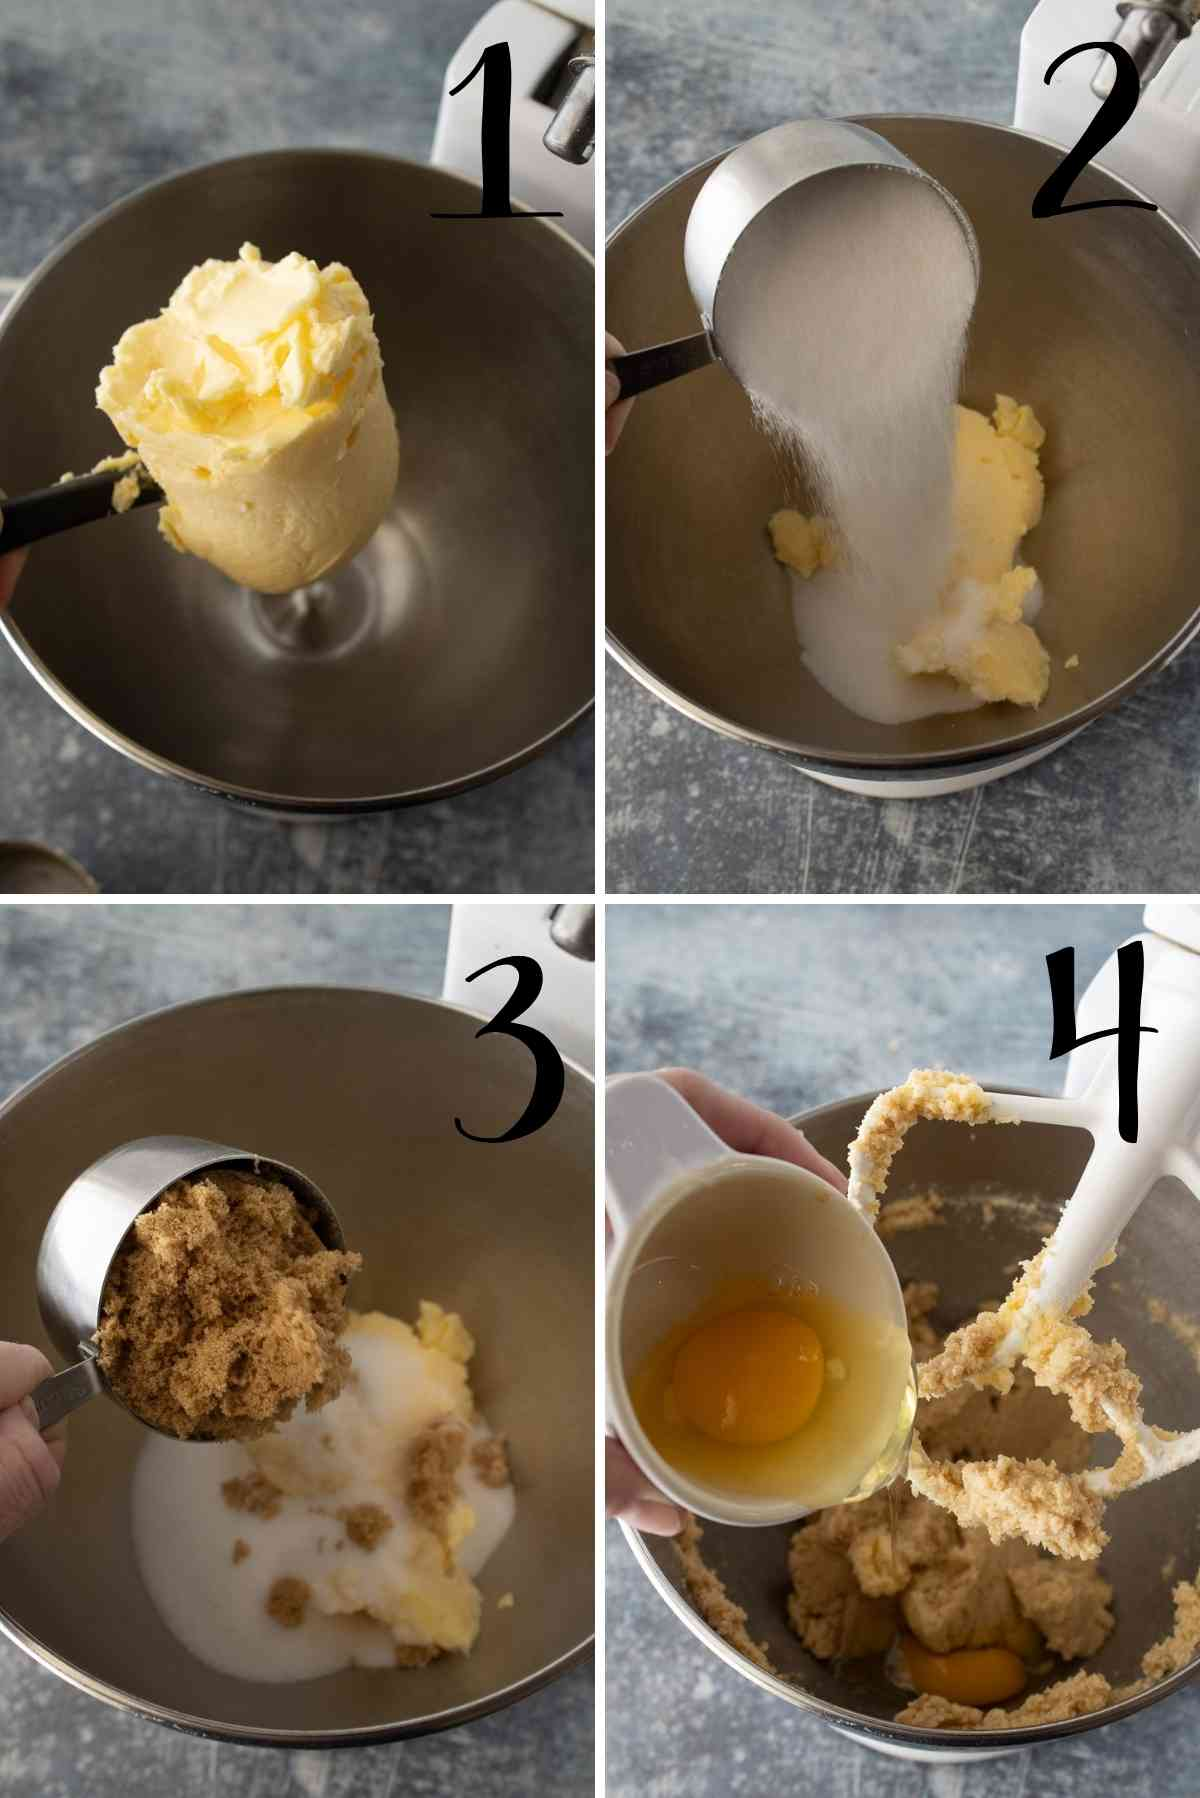 Shortening, sugars and eggs mixed in a mixing bowl.